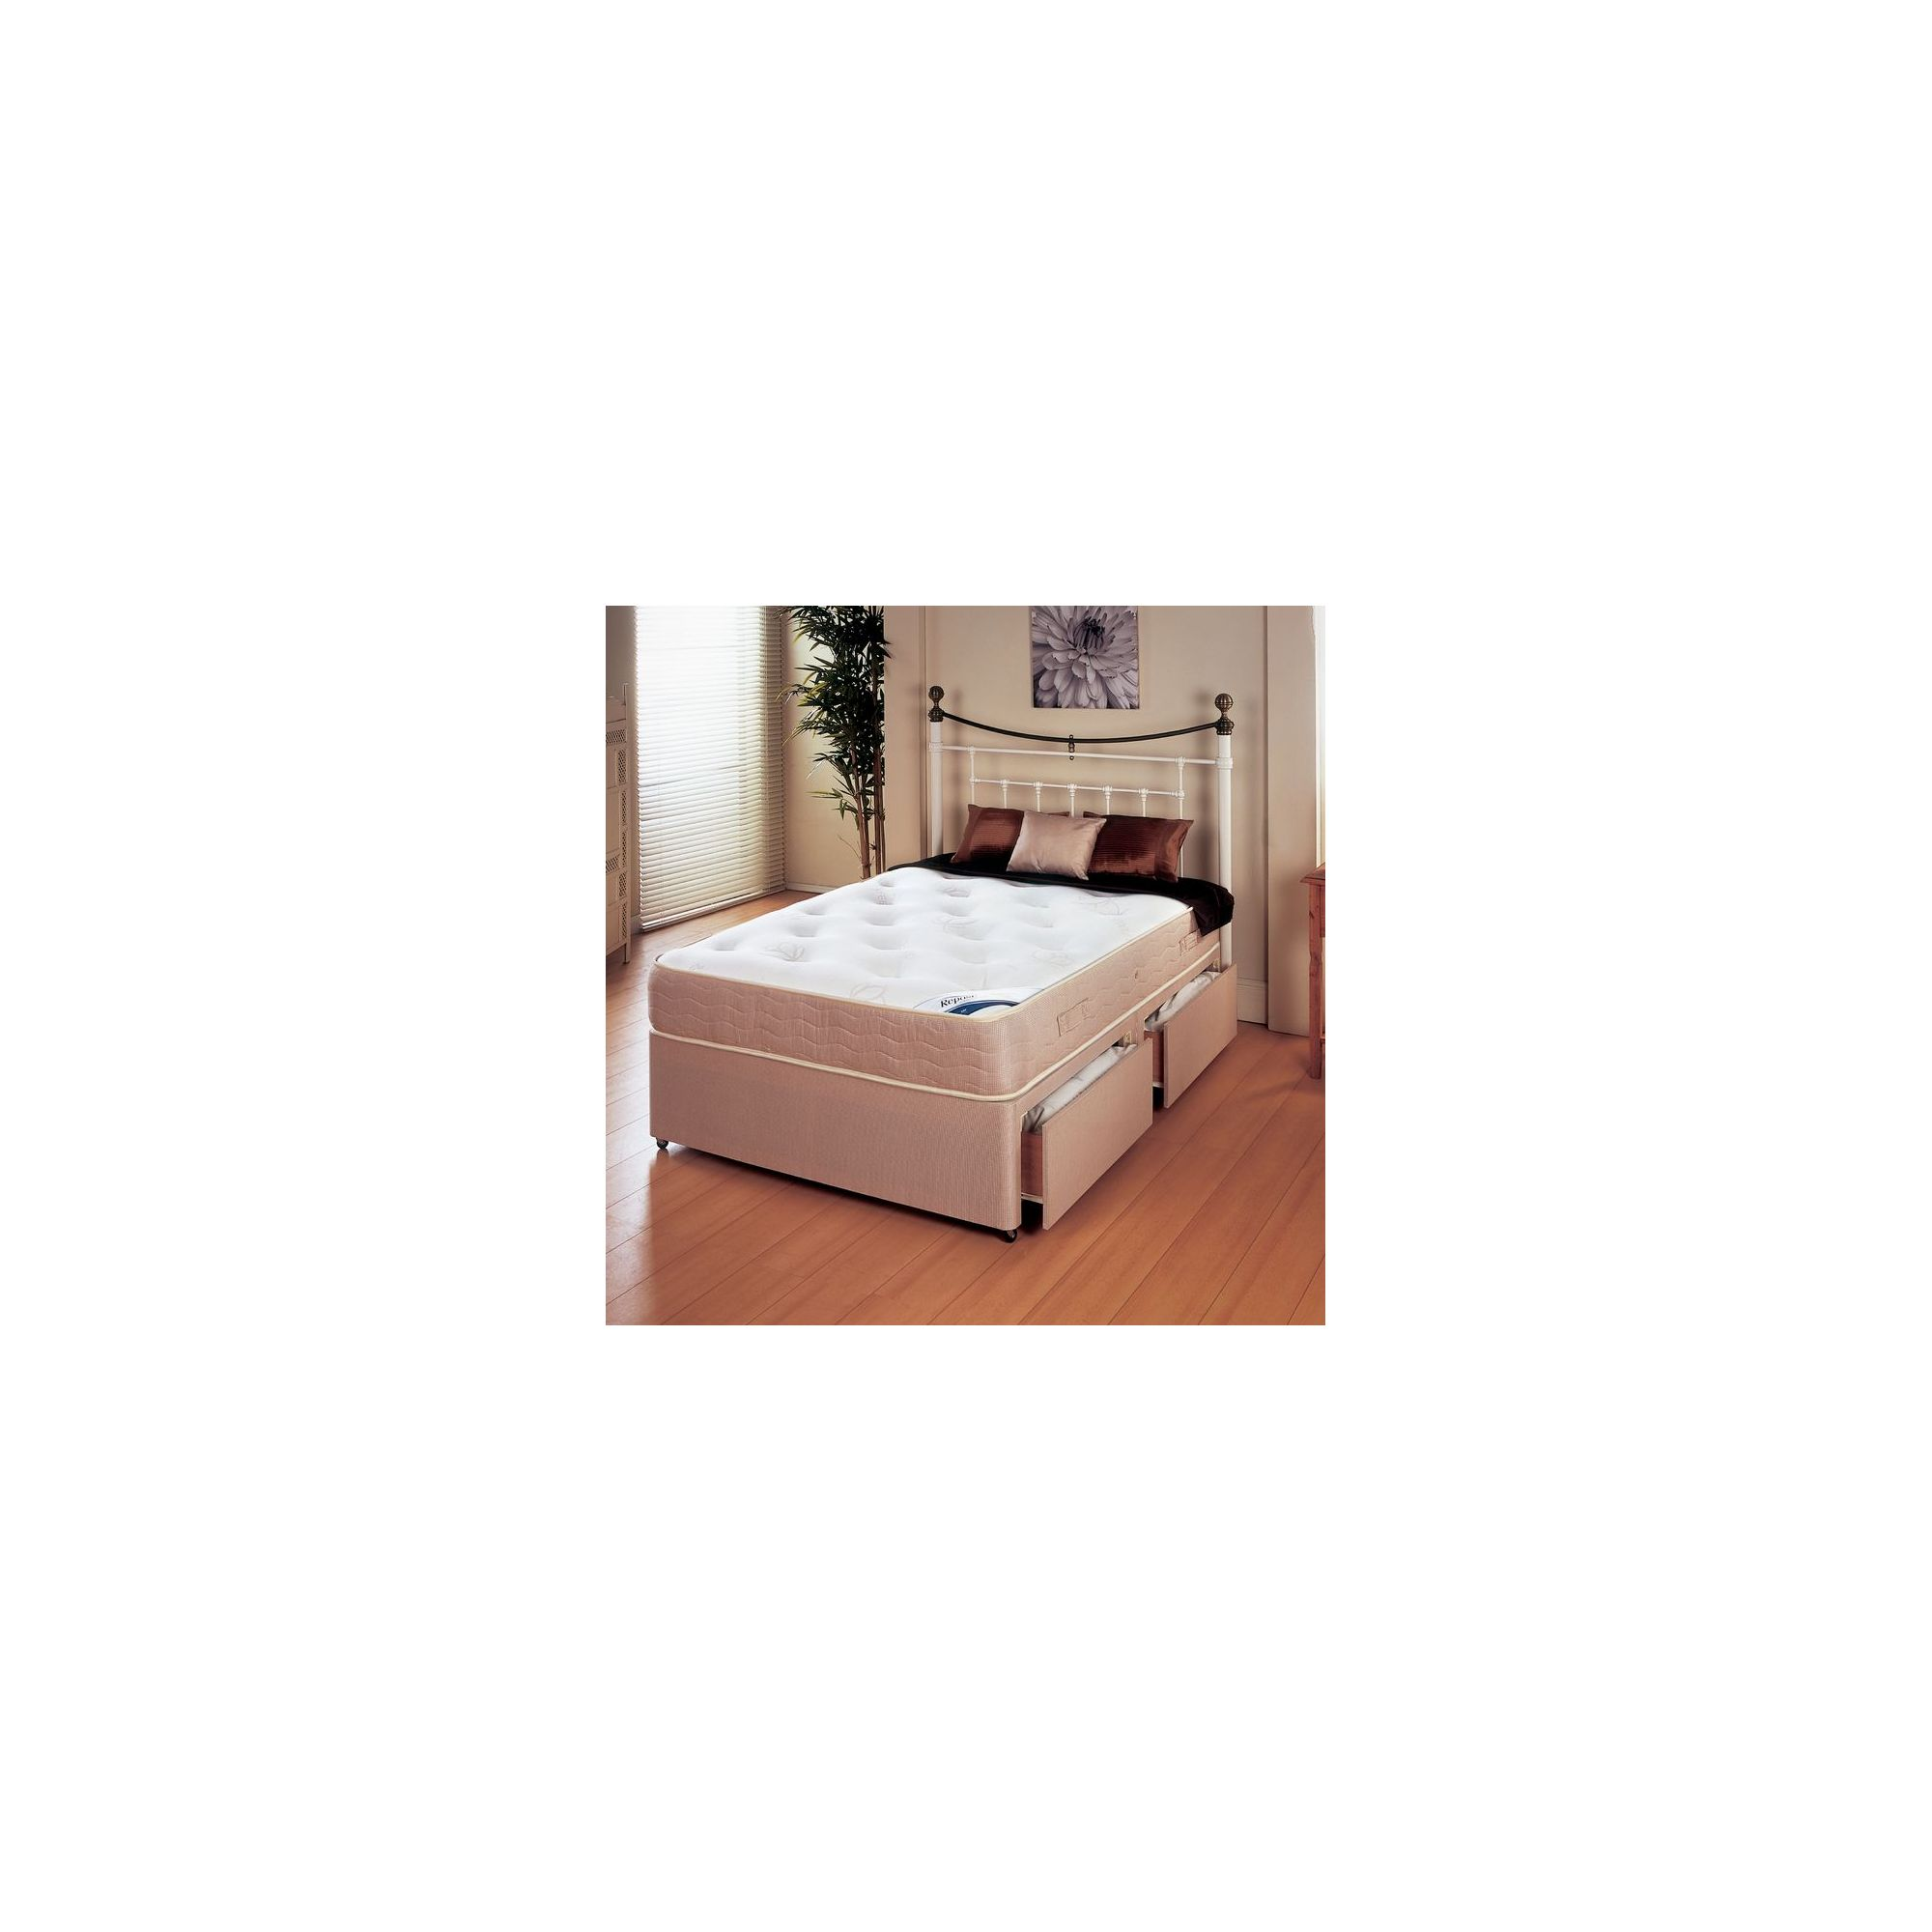 Repose New Princess 1000 Platform Set - Small Single/Single / 0 Drawer at Tescos Direct